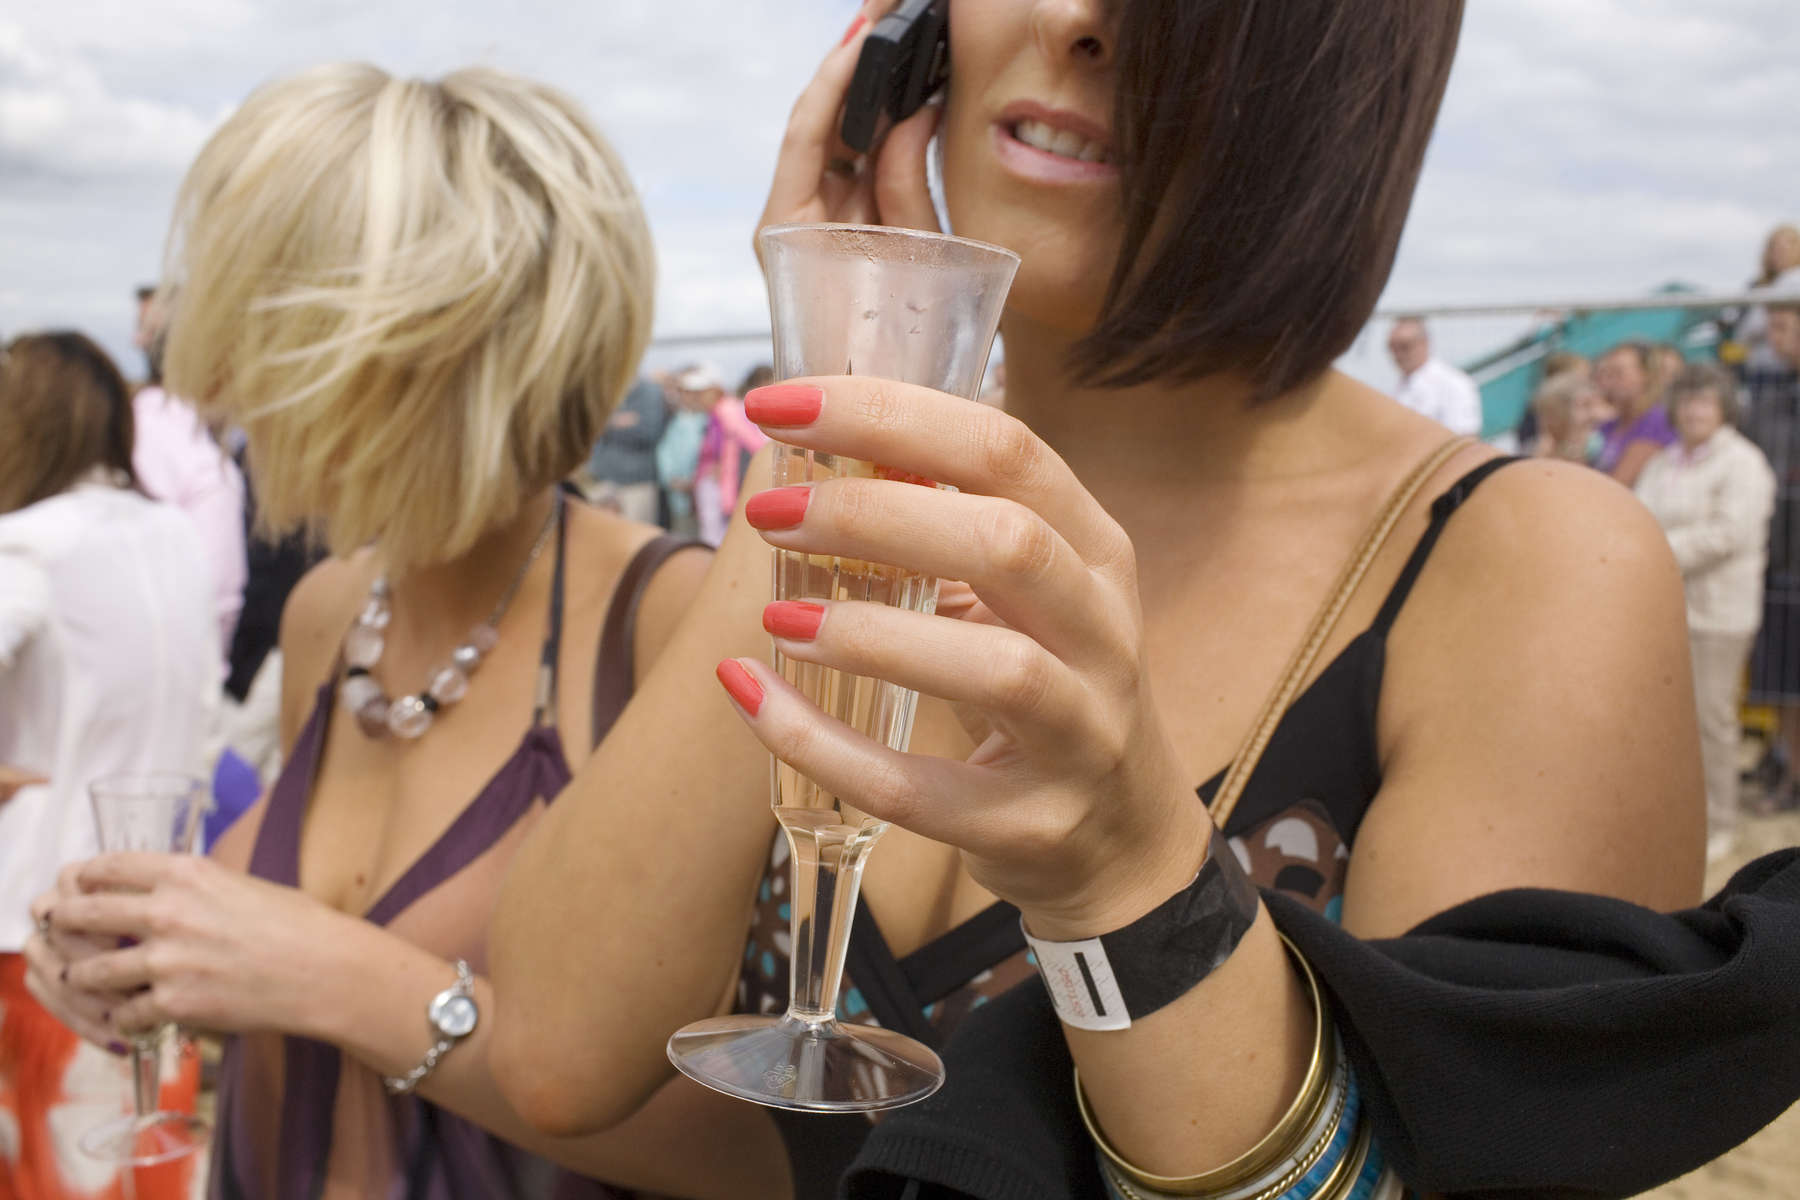 A woman talks on her mobile phone with a glass of champagne at the inaugural British beach Polo event on Sandbanks beach. Sandbanks is a small sand dune on the south coast in the county of Dorset and arguably the most expensive place to live on the planet. Property by the golden sand beach and turquoise clear sea are fetching $20 million prices.